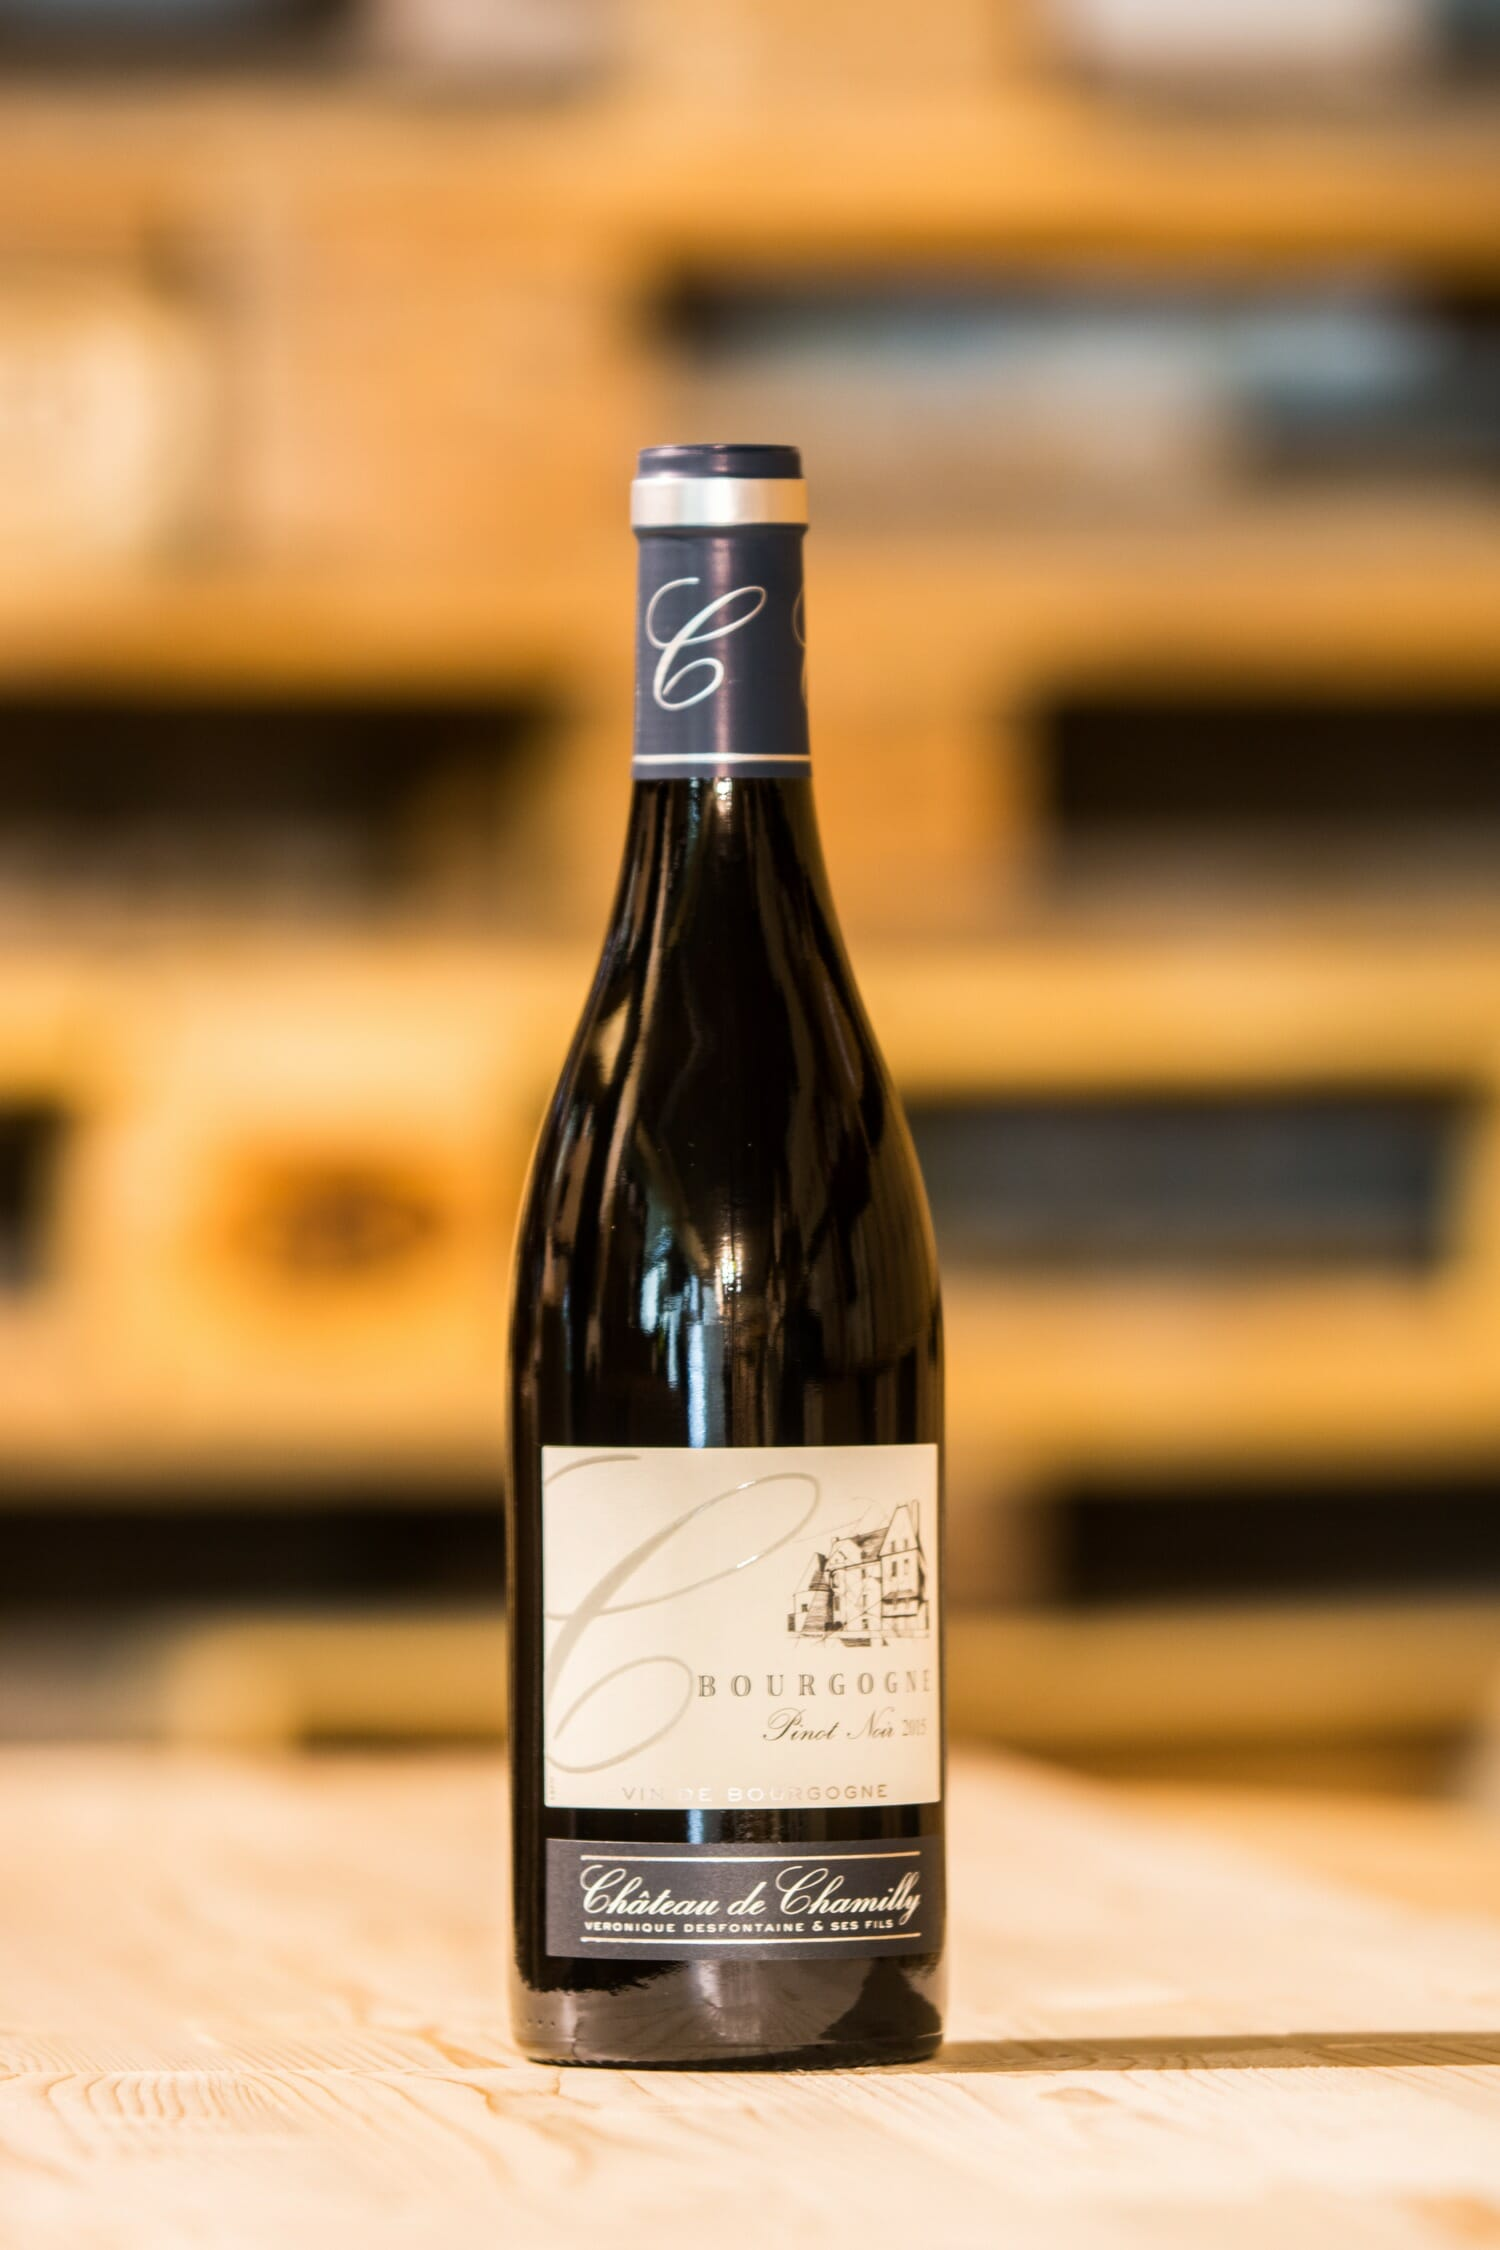 Chateau de Chamilly Bourgogne Pinot Noir